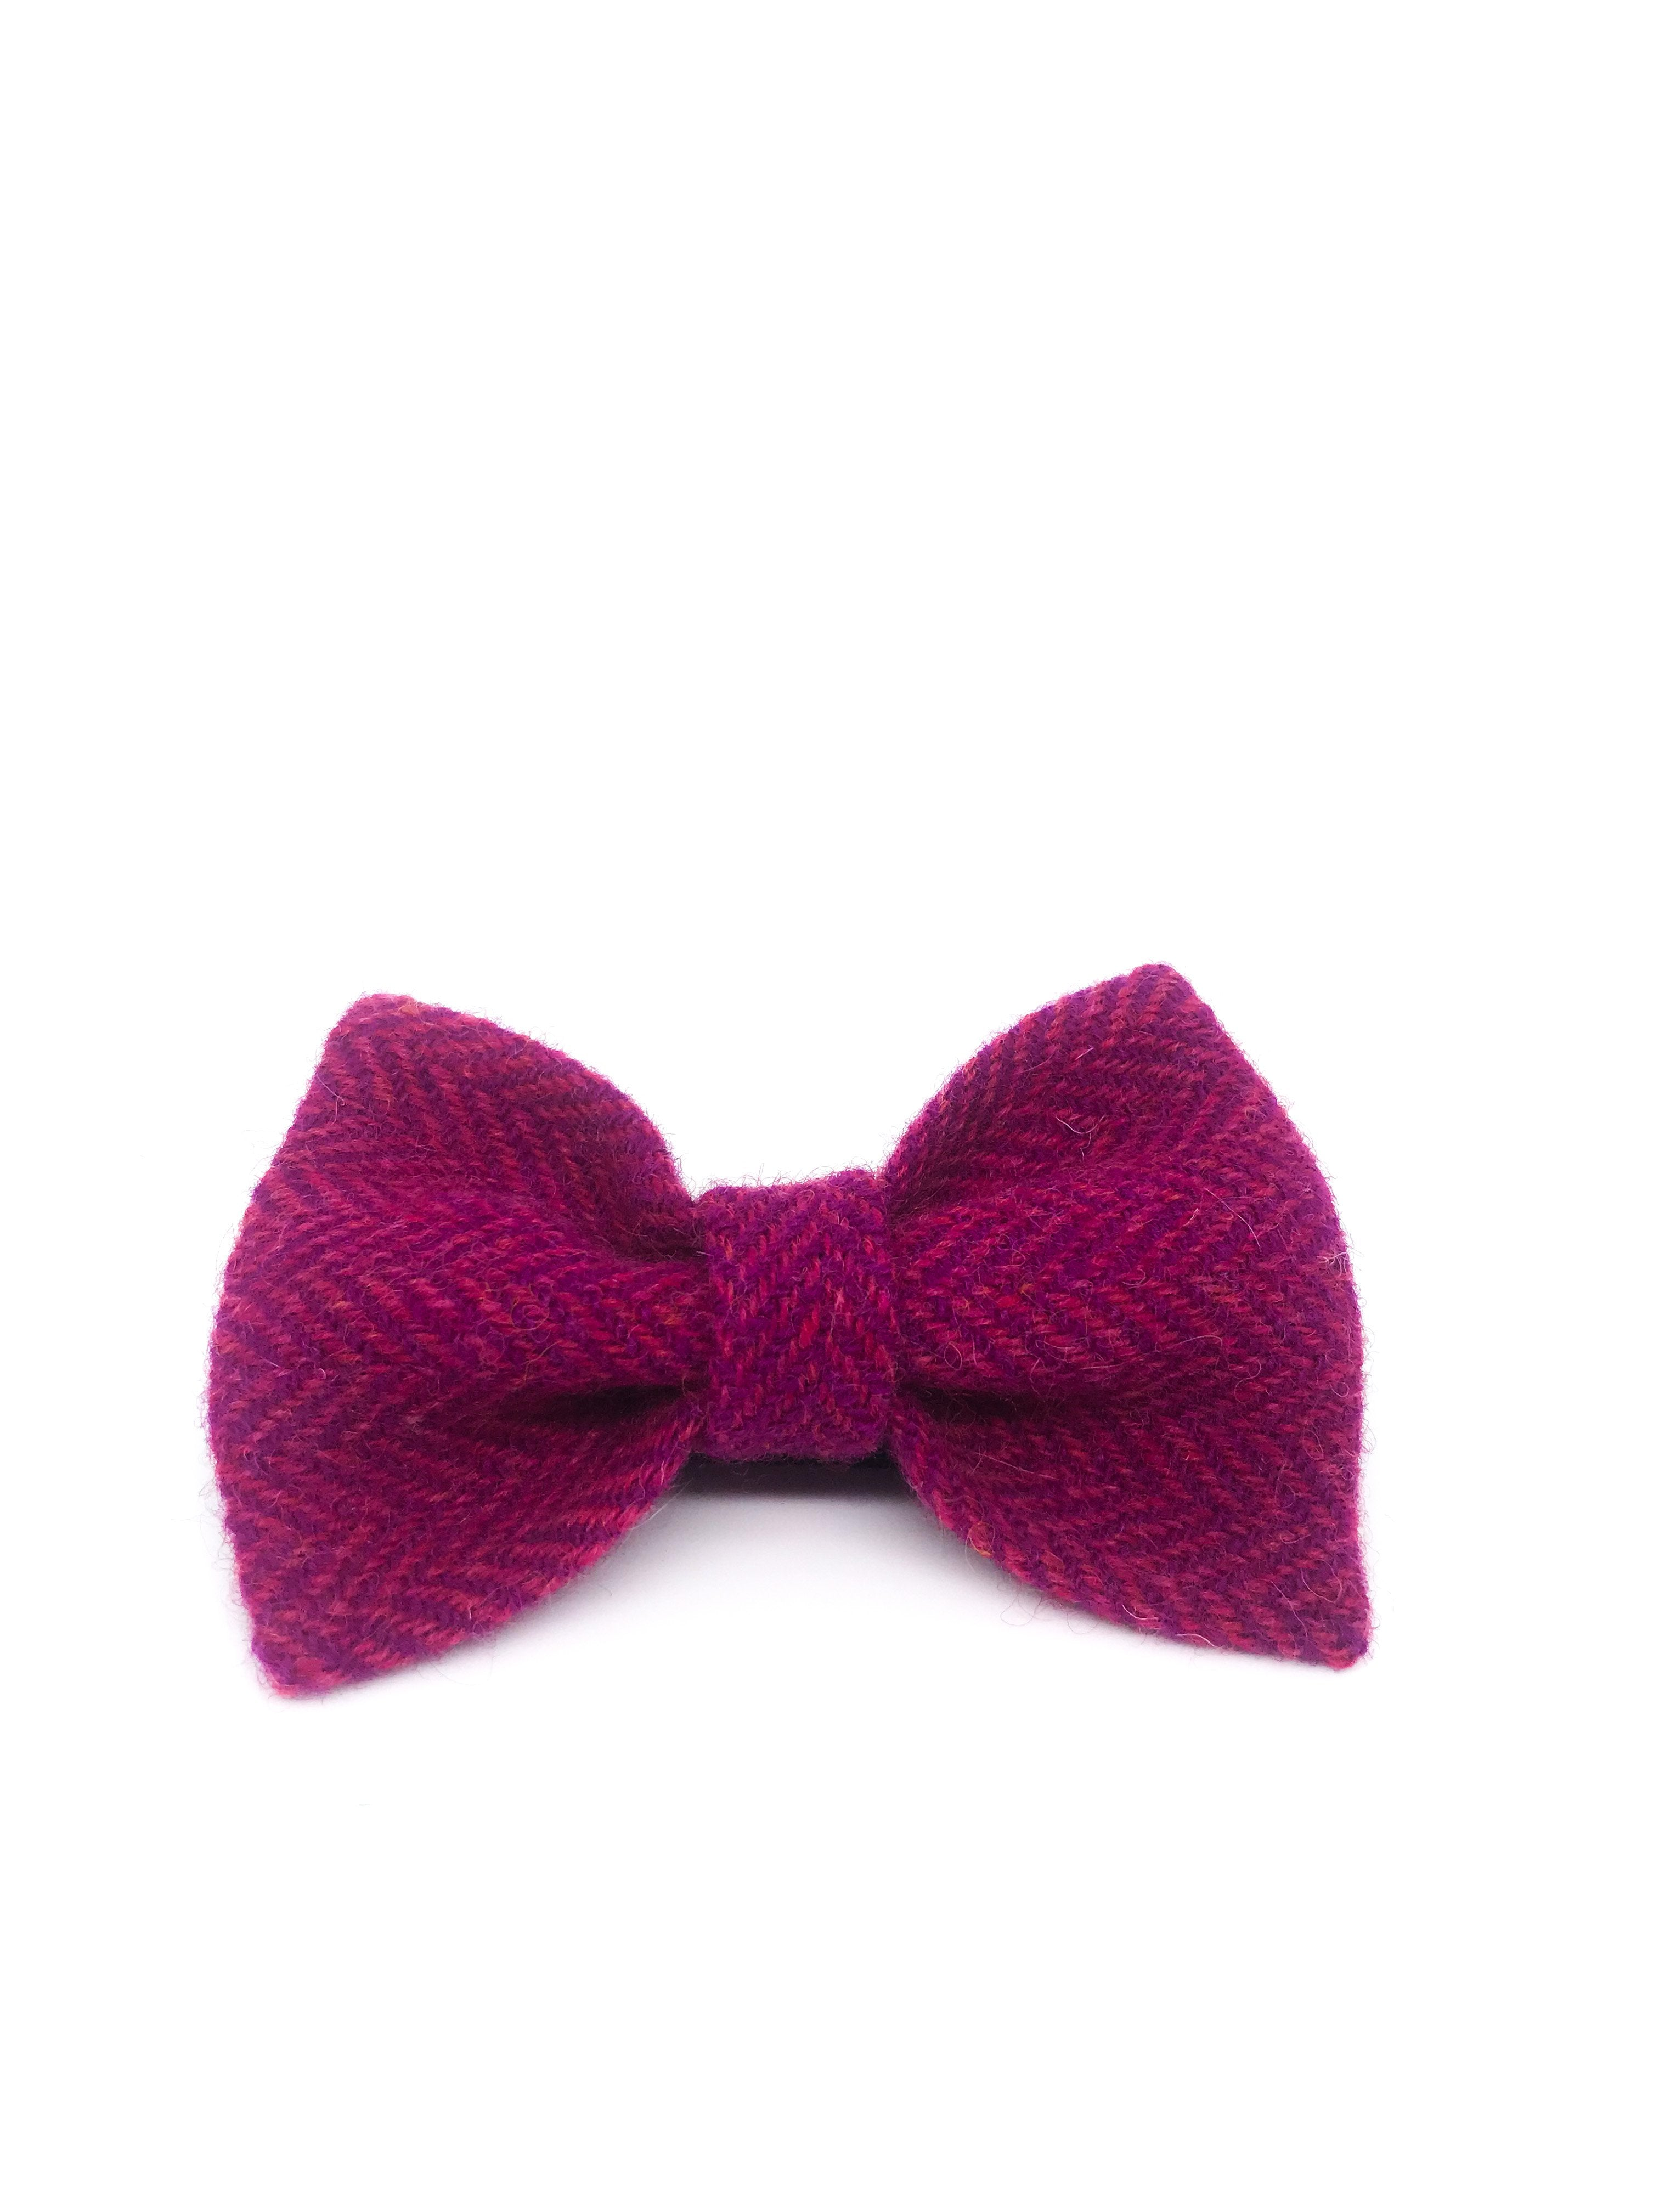 Bow Tie (Raspberry) - MIMI+MARTHA